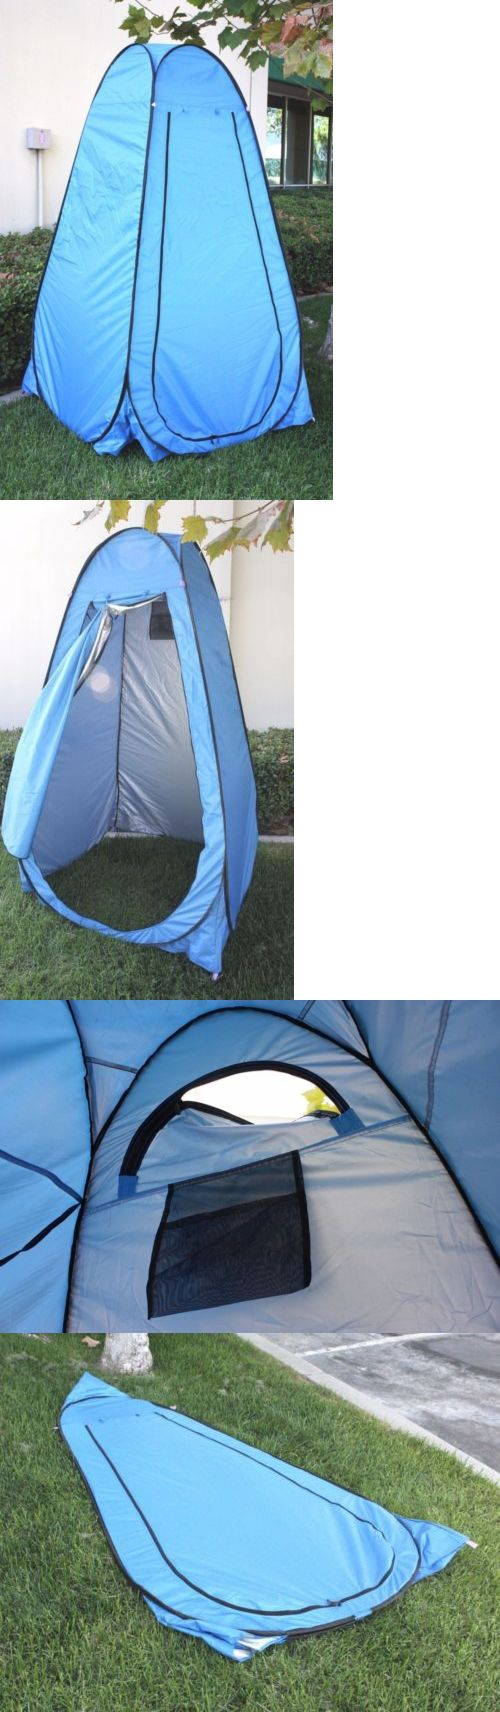 Other Camping Hygiene Accs 181400: Portable Pop Up Outdoor Camping Changing Shower Tent Sunless Booth W/ Window -> BUY IT NOW ONLY: $32.99 on eBay!